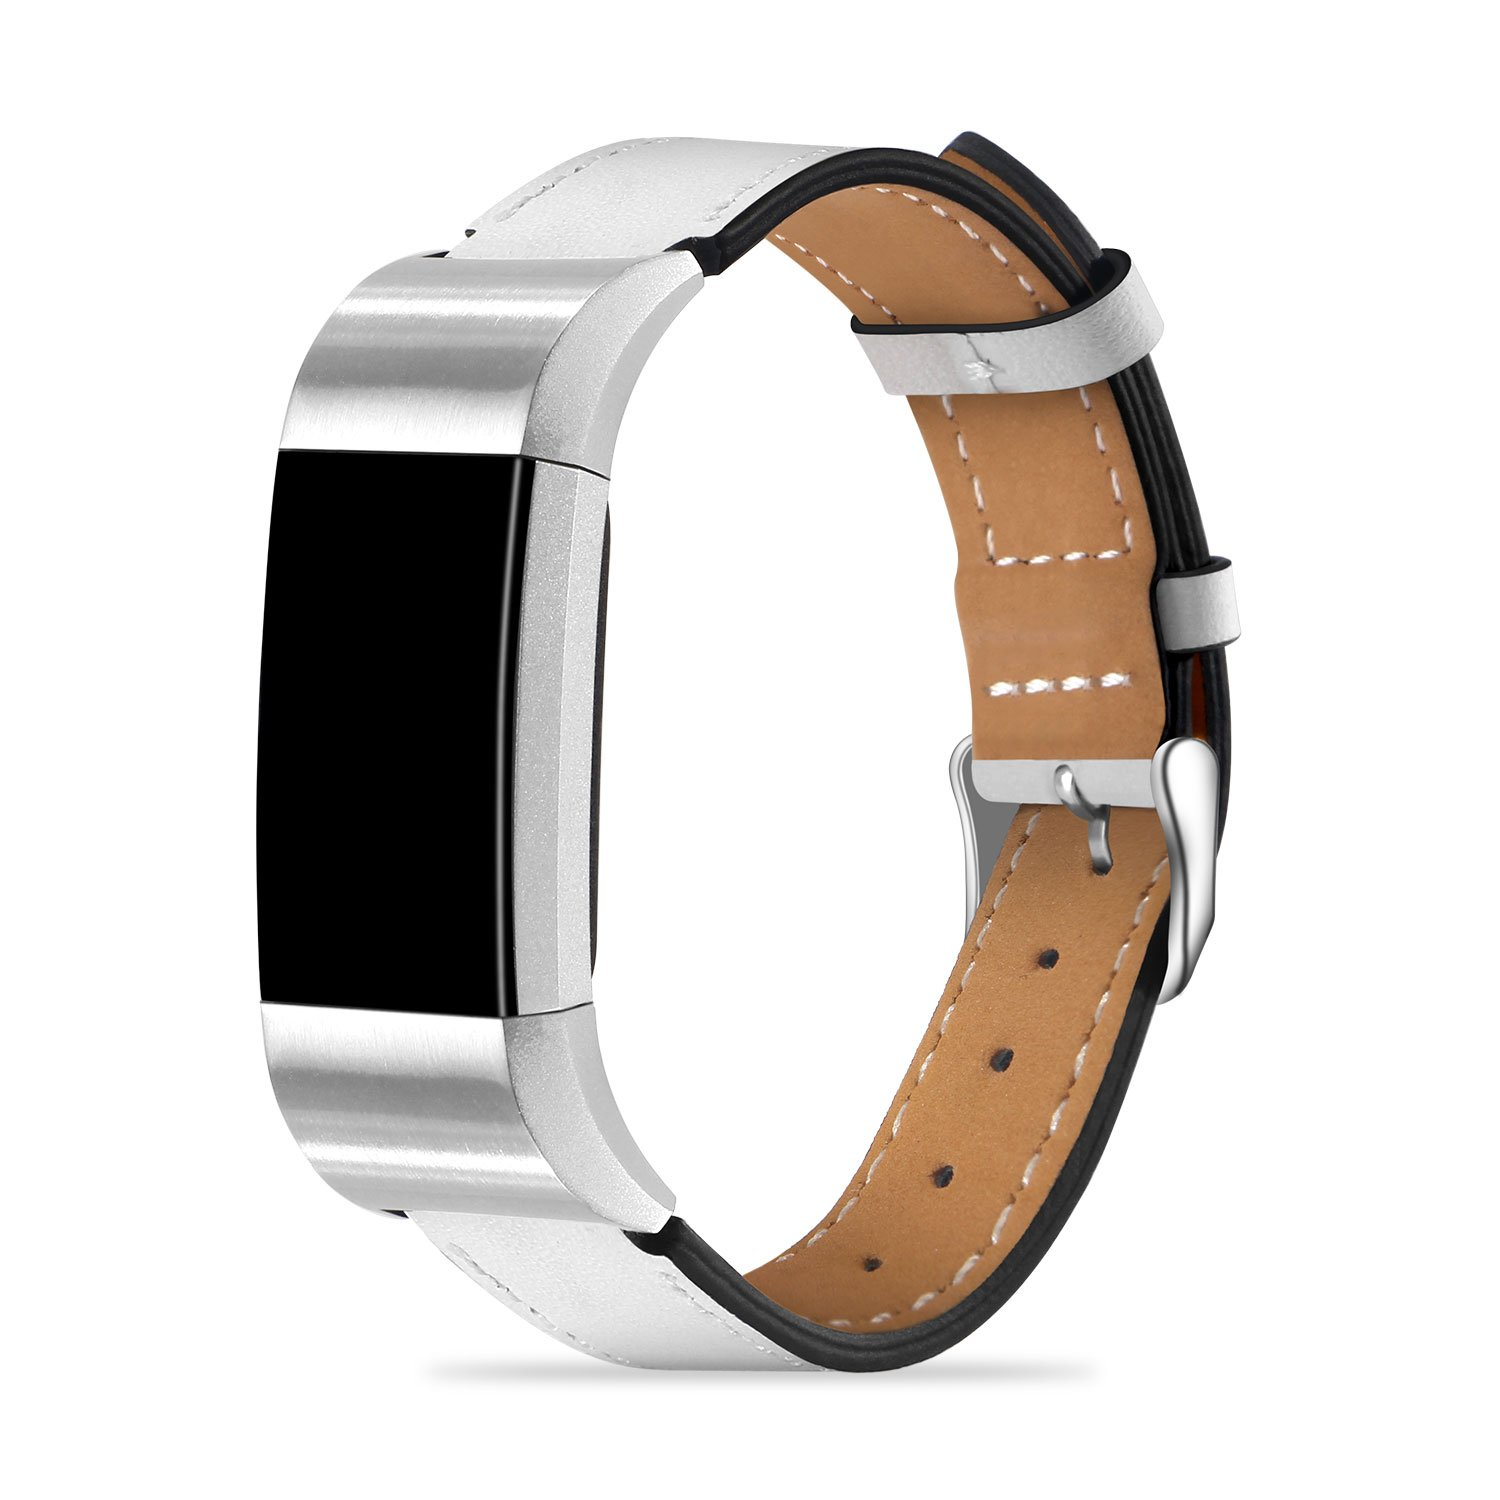 Fitbit Charge 2 Bands - Icheckey Genuine Leather Replacement Wristbands Include Gift Box for Fitbit Charge 2, Large Small Charge 2 Fitness Strap White